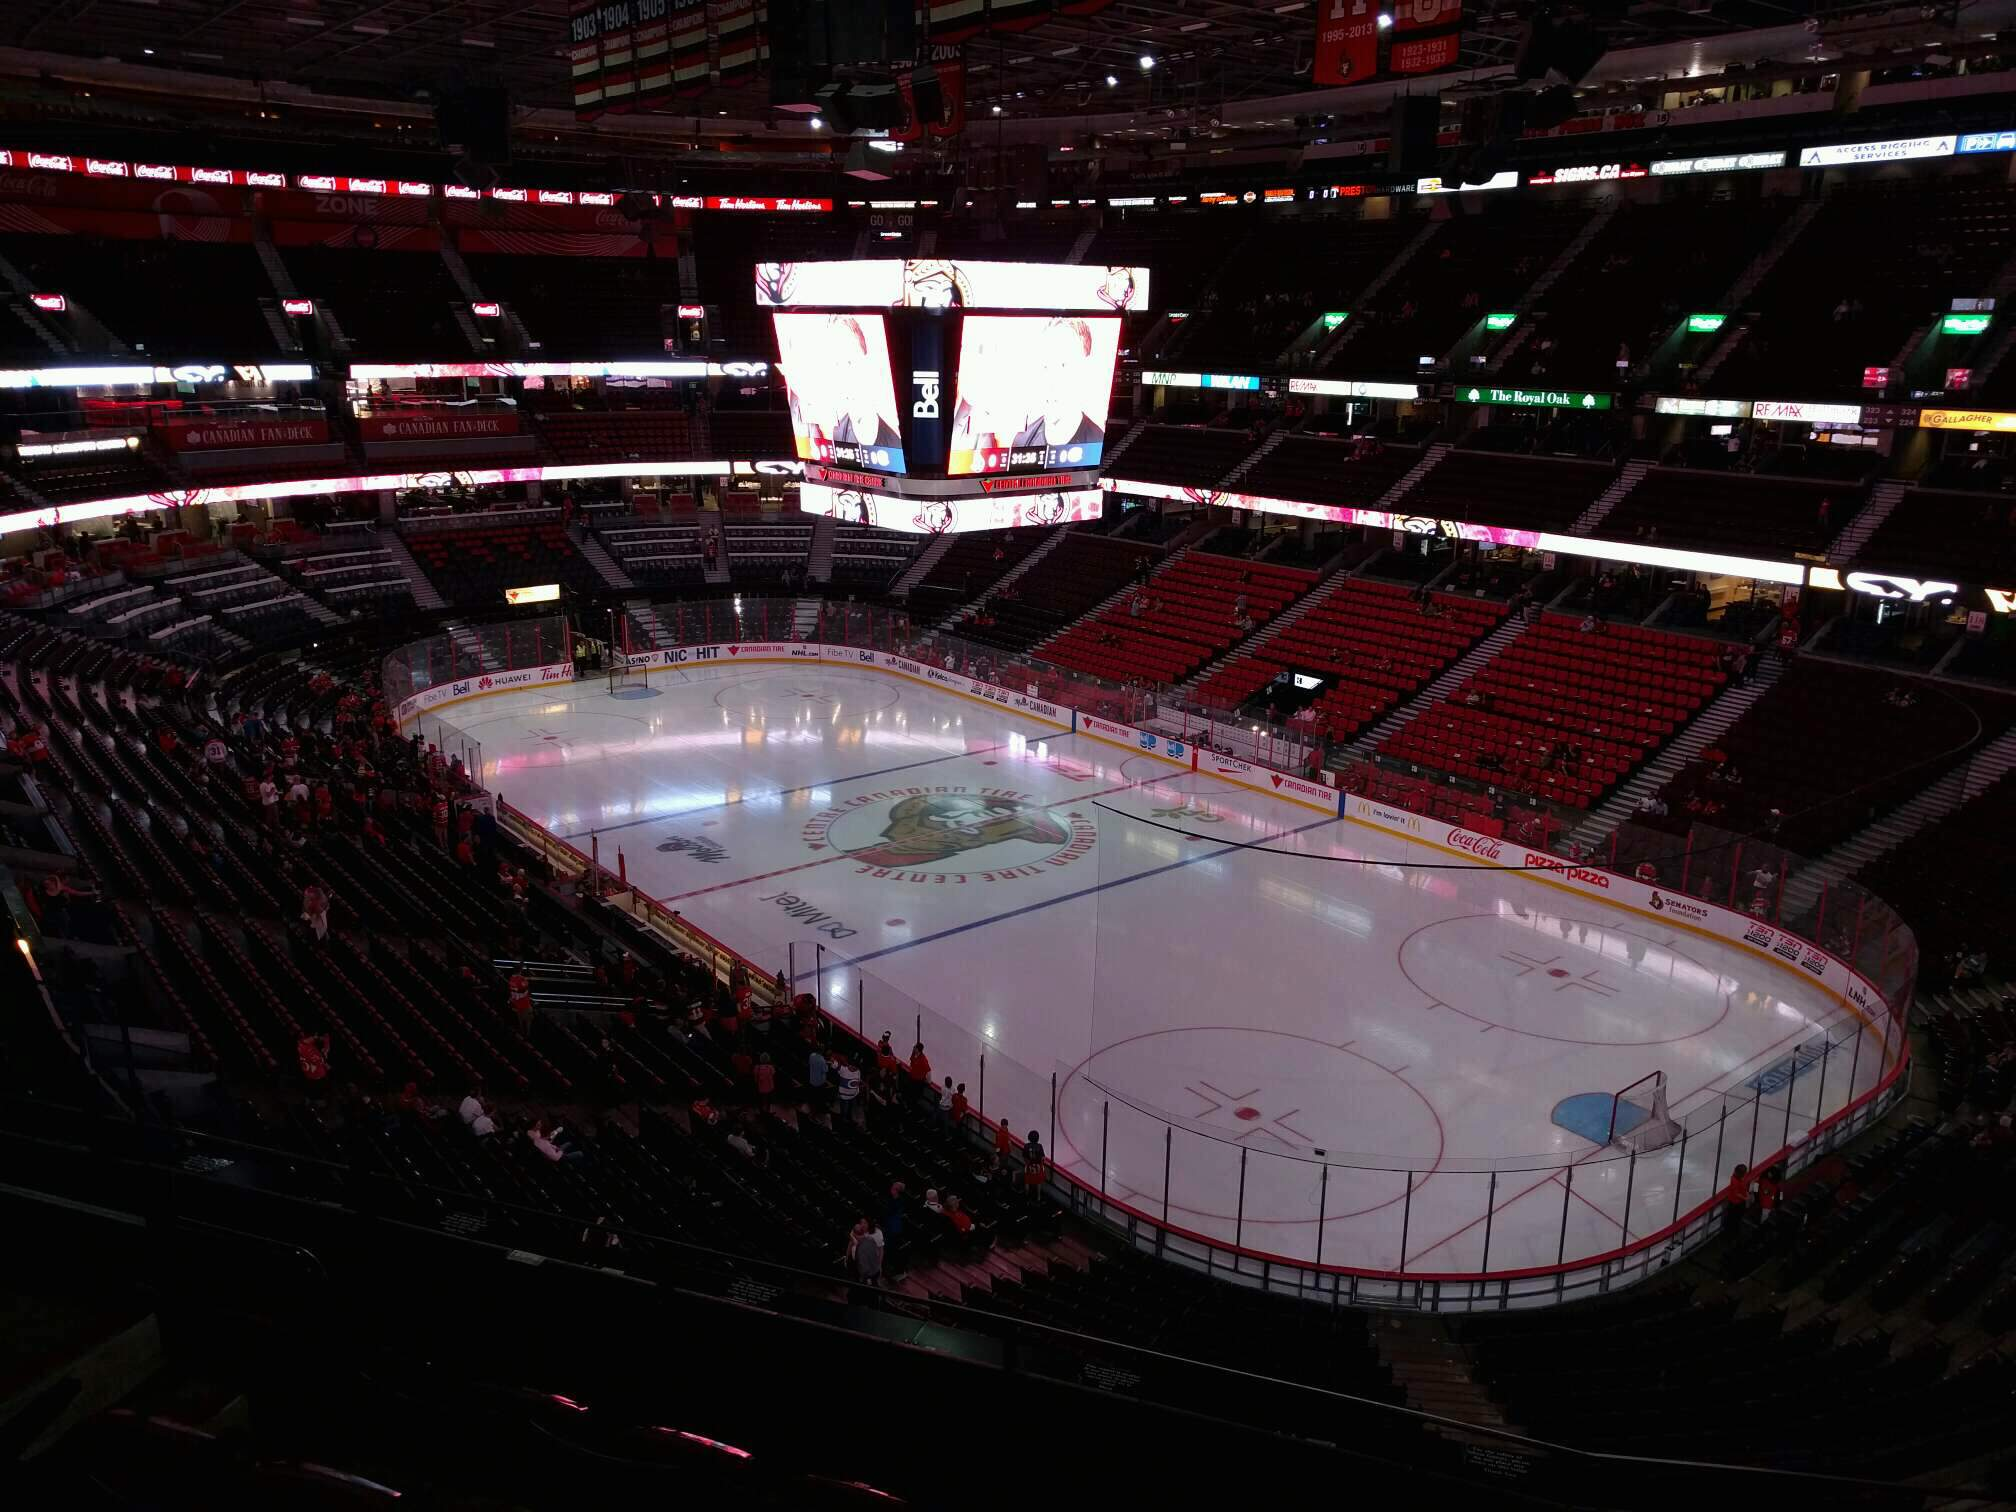 Canadian Tire Centre Section 304 Row e Seat 11